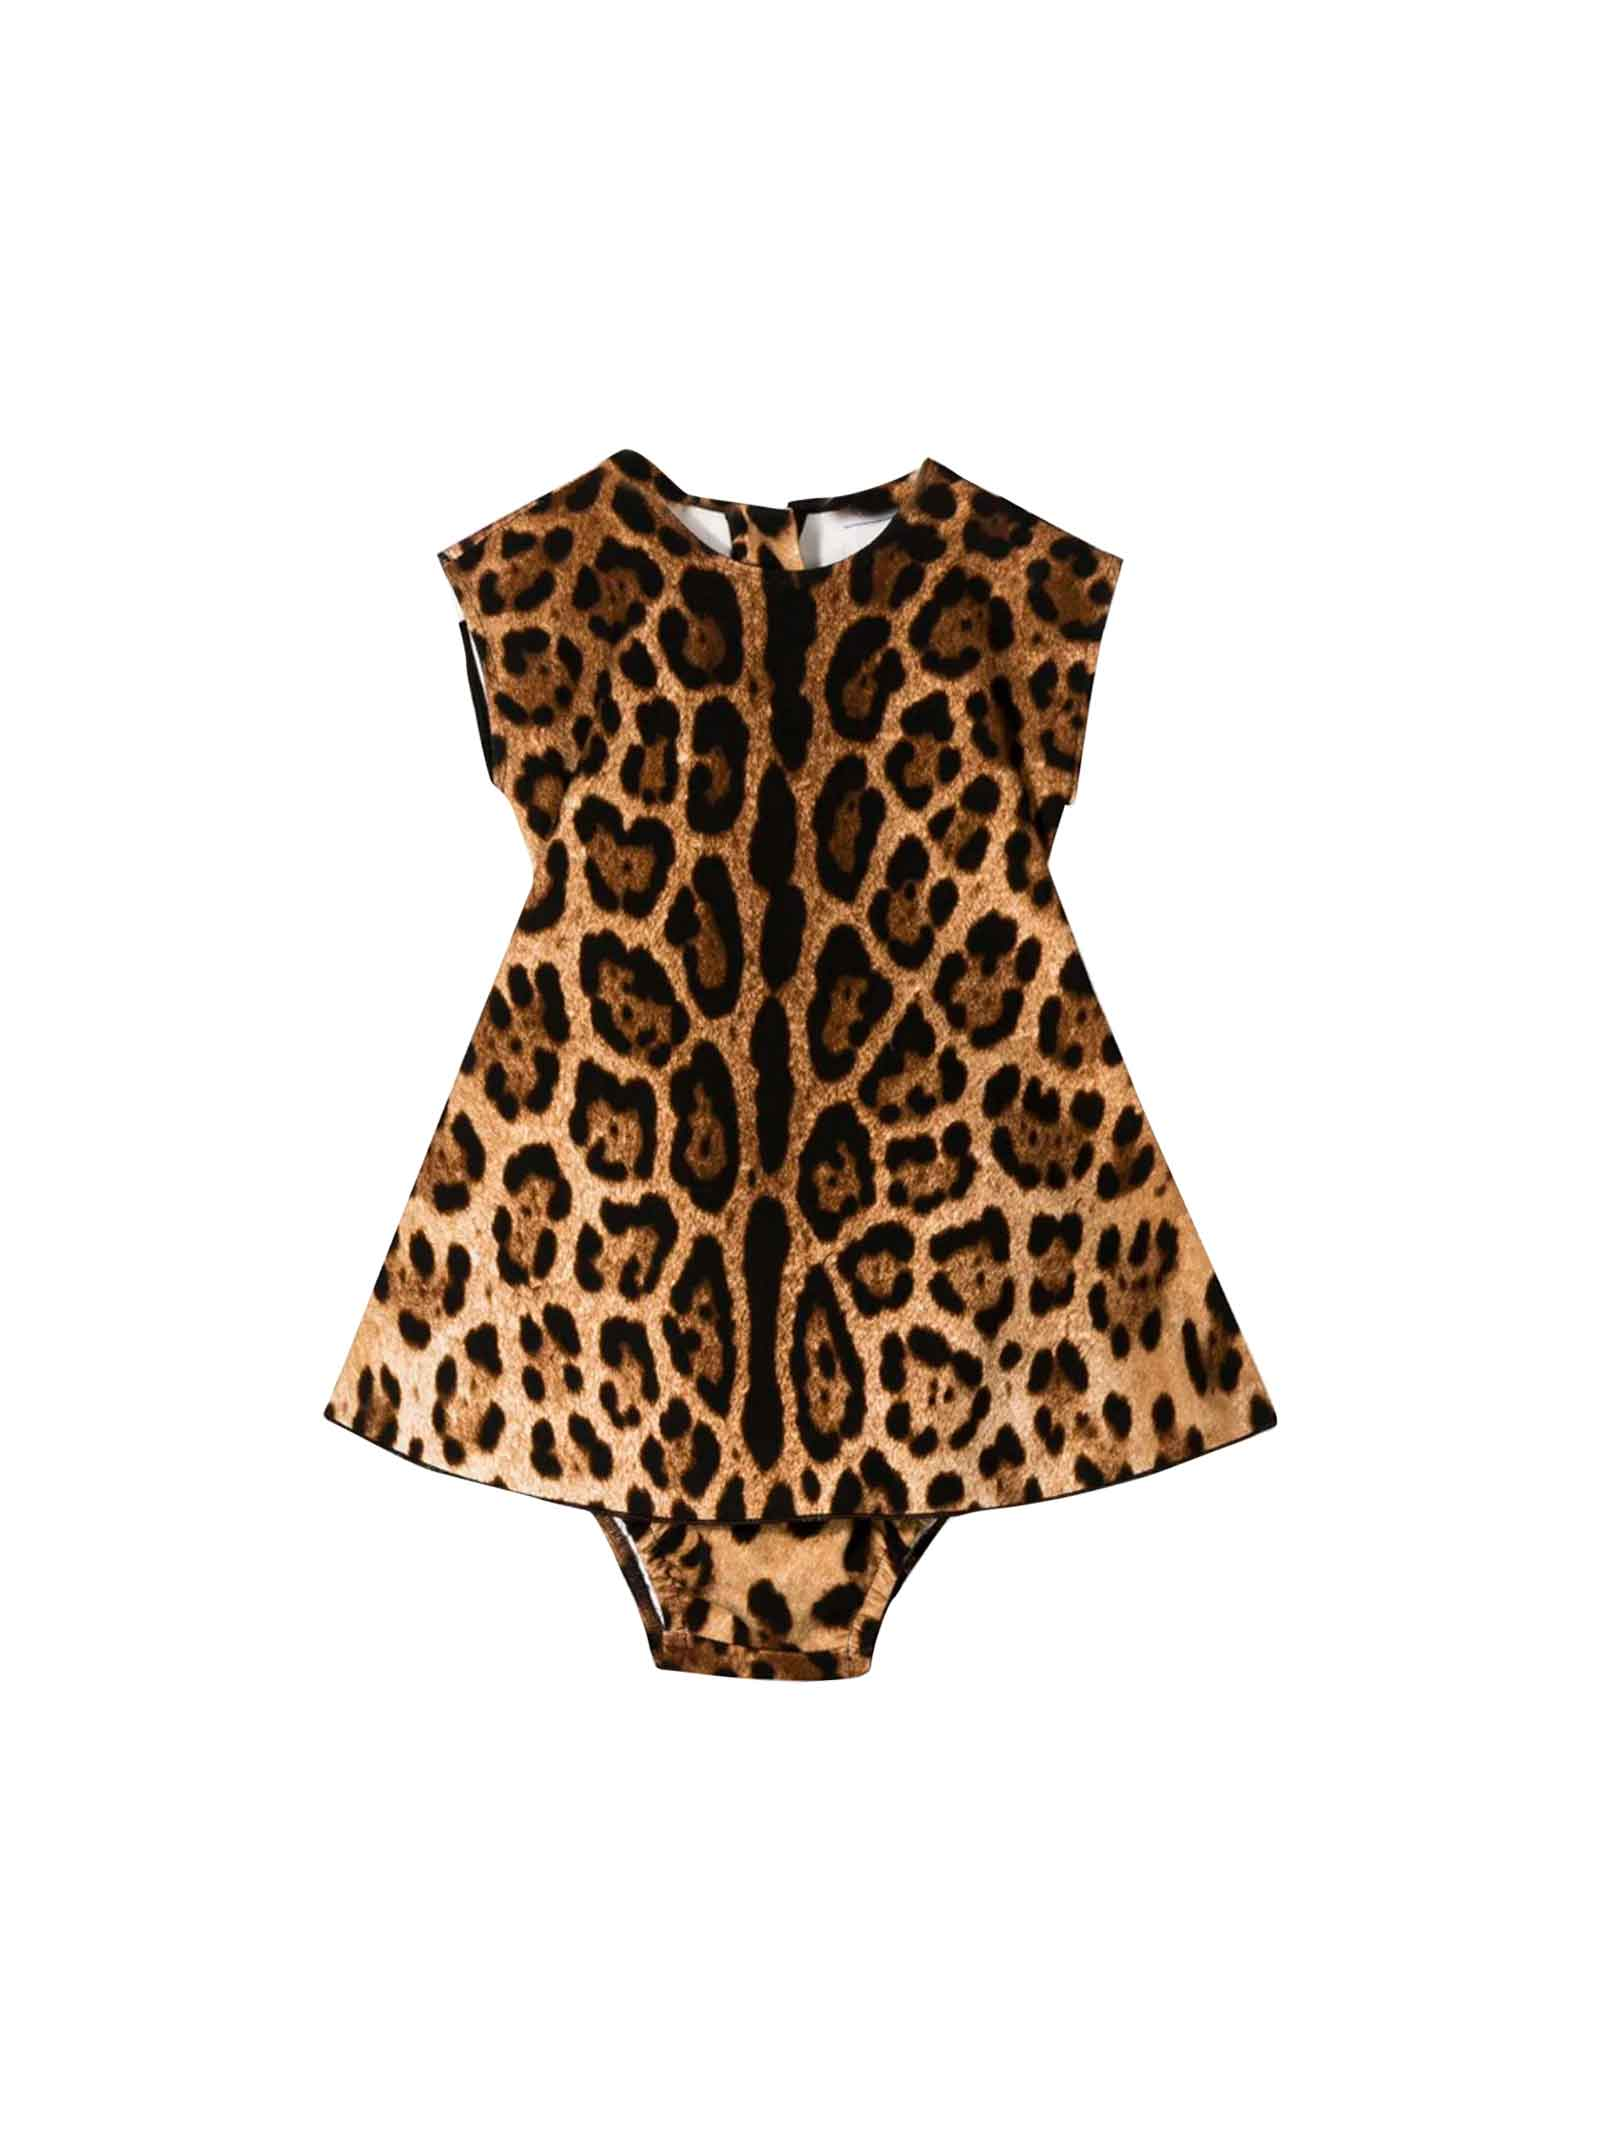 Dolce & Gabbana Dolce And Gabbana Kids Newborn Leopard Print Dress